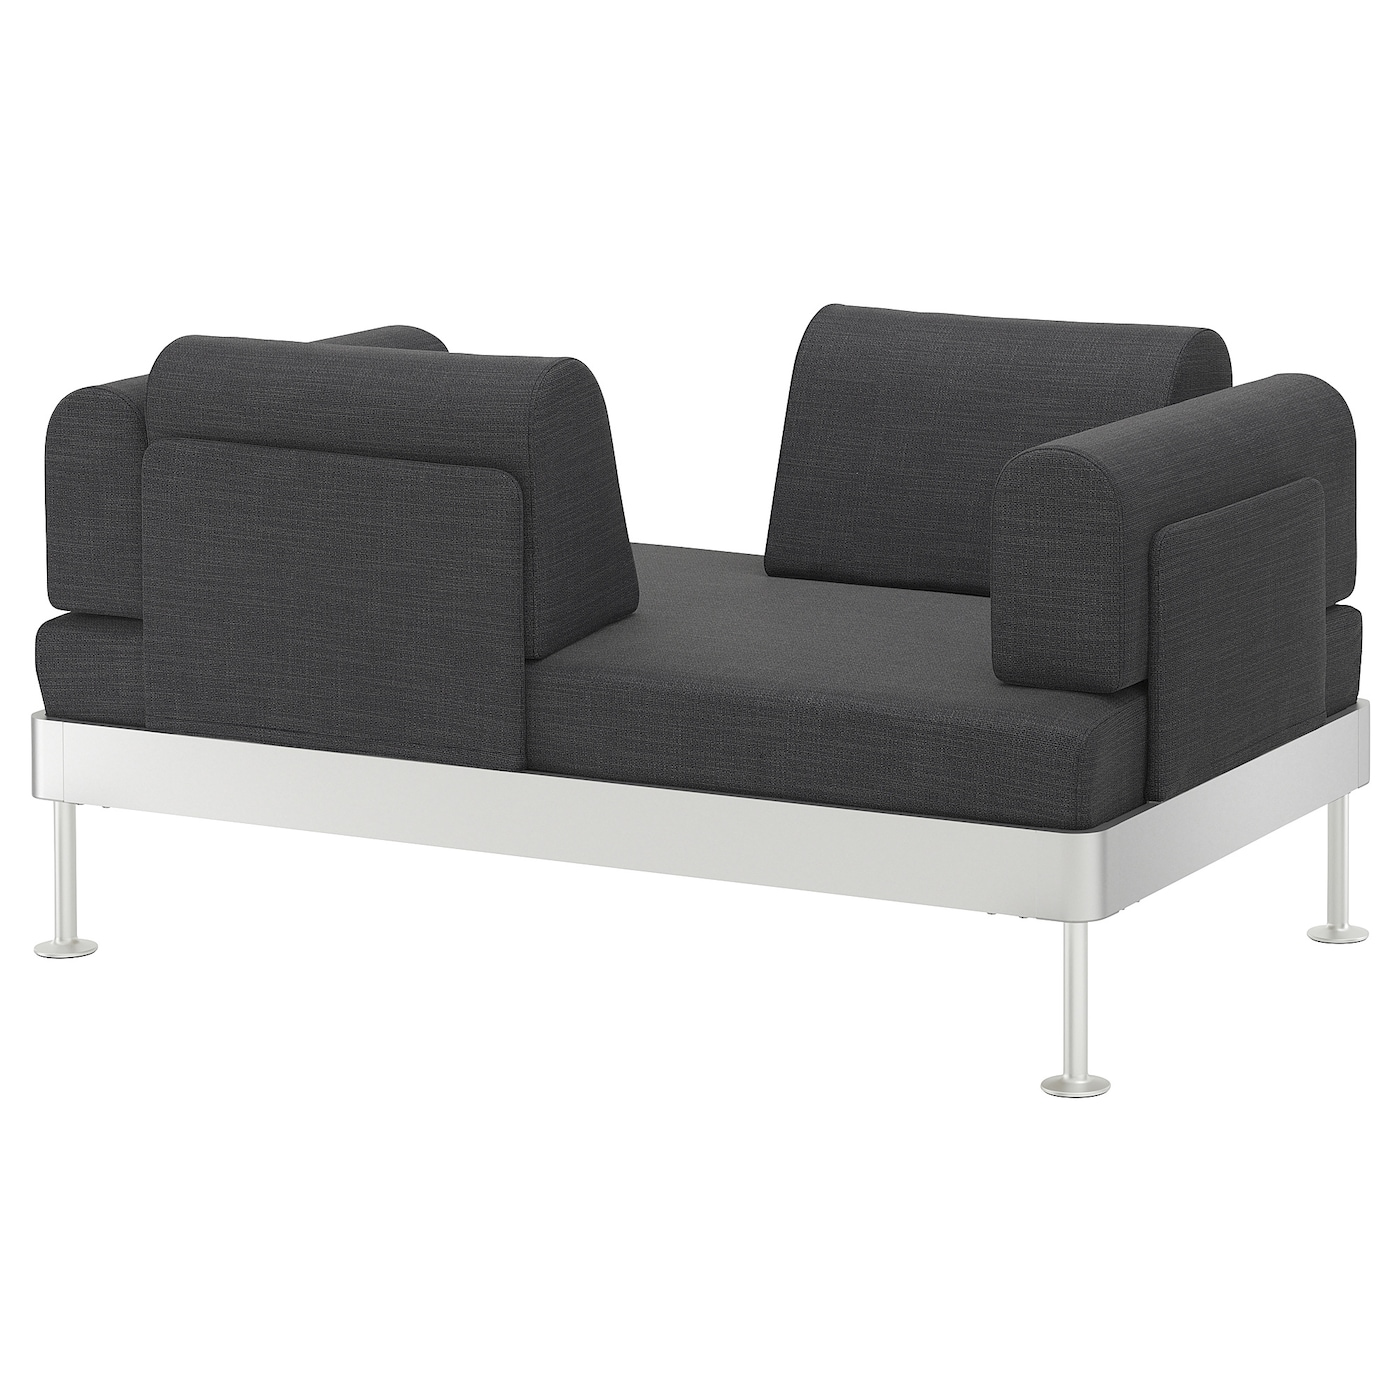 delaktig 2 seat sofa hillared anthracite ikea. Black Bedroom Furniture Sets. Home Design Ideas